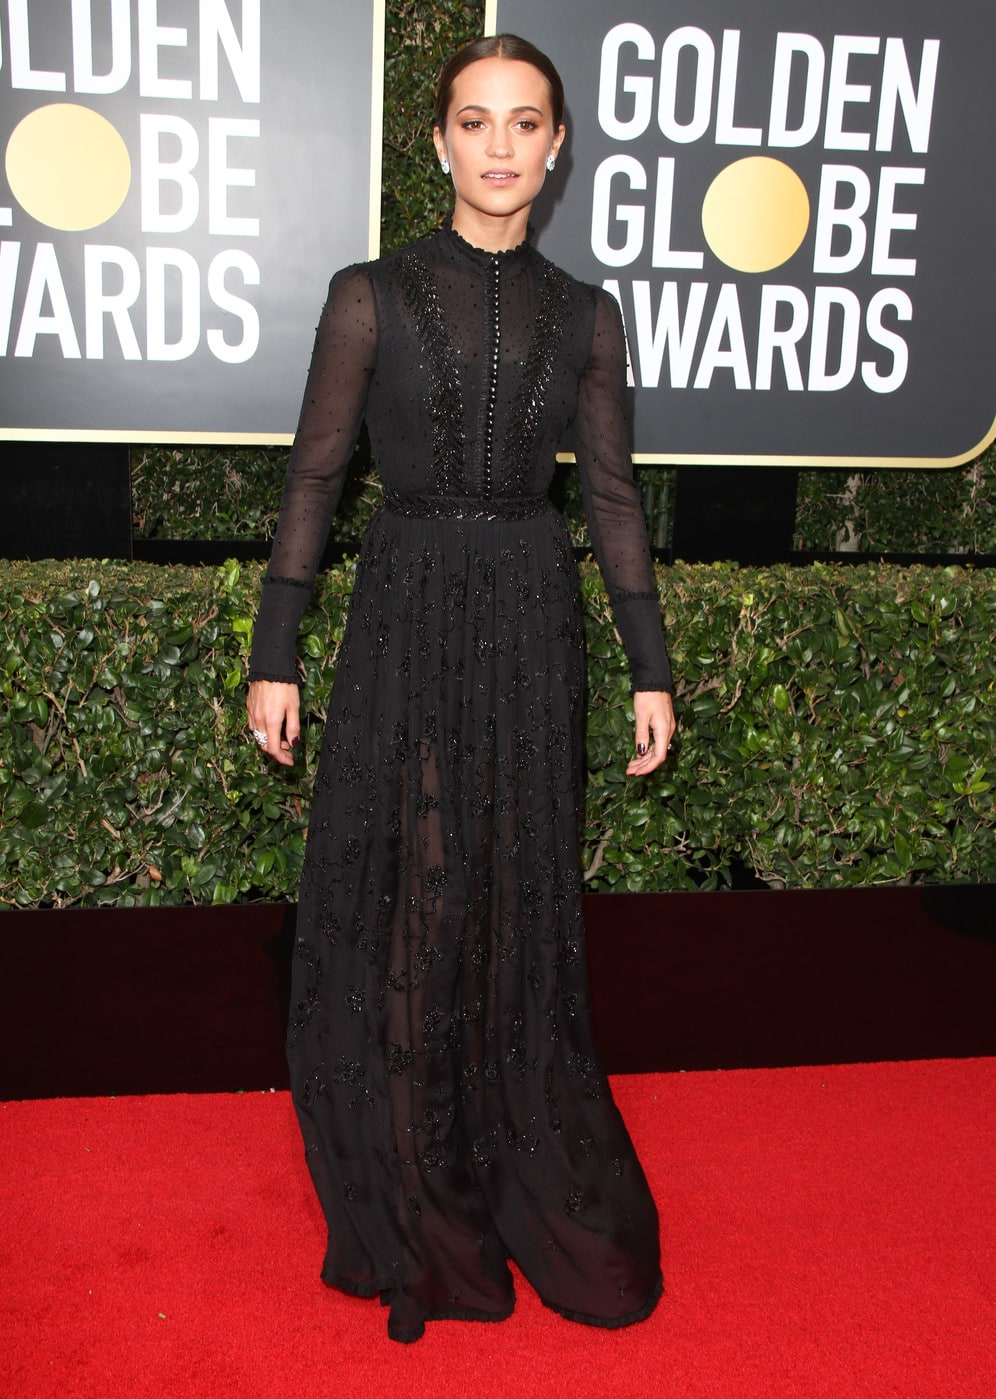 Alicia Vikander in a long sleeved Victorian influenced Louis Vuitton gown in black at the 2018 Golden Globe Awards red carpet